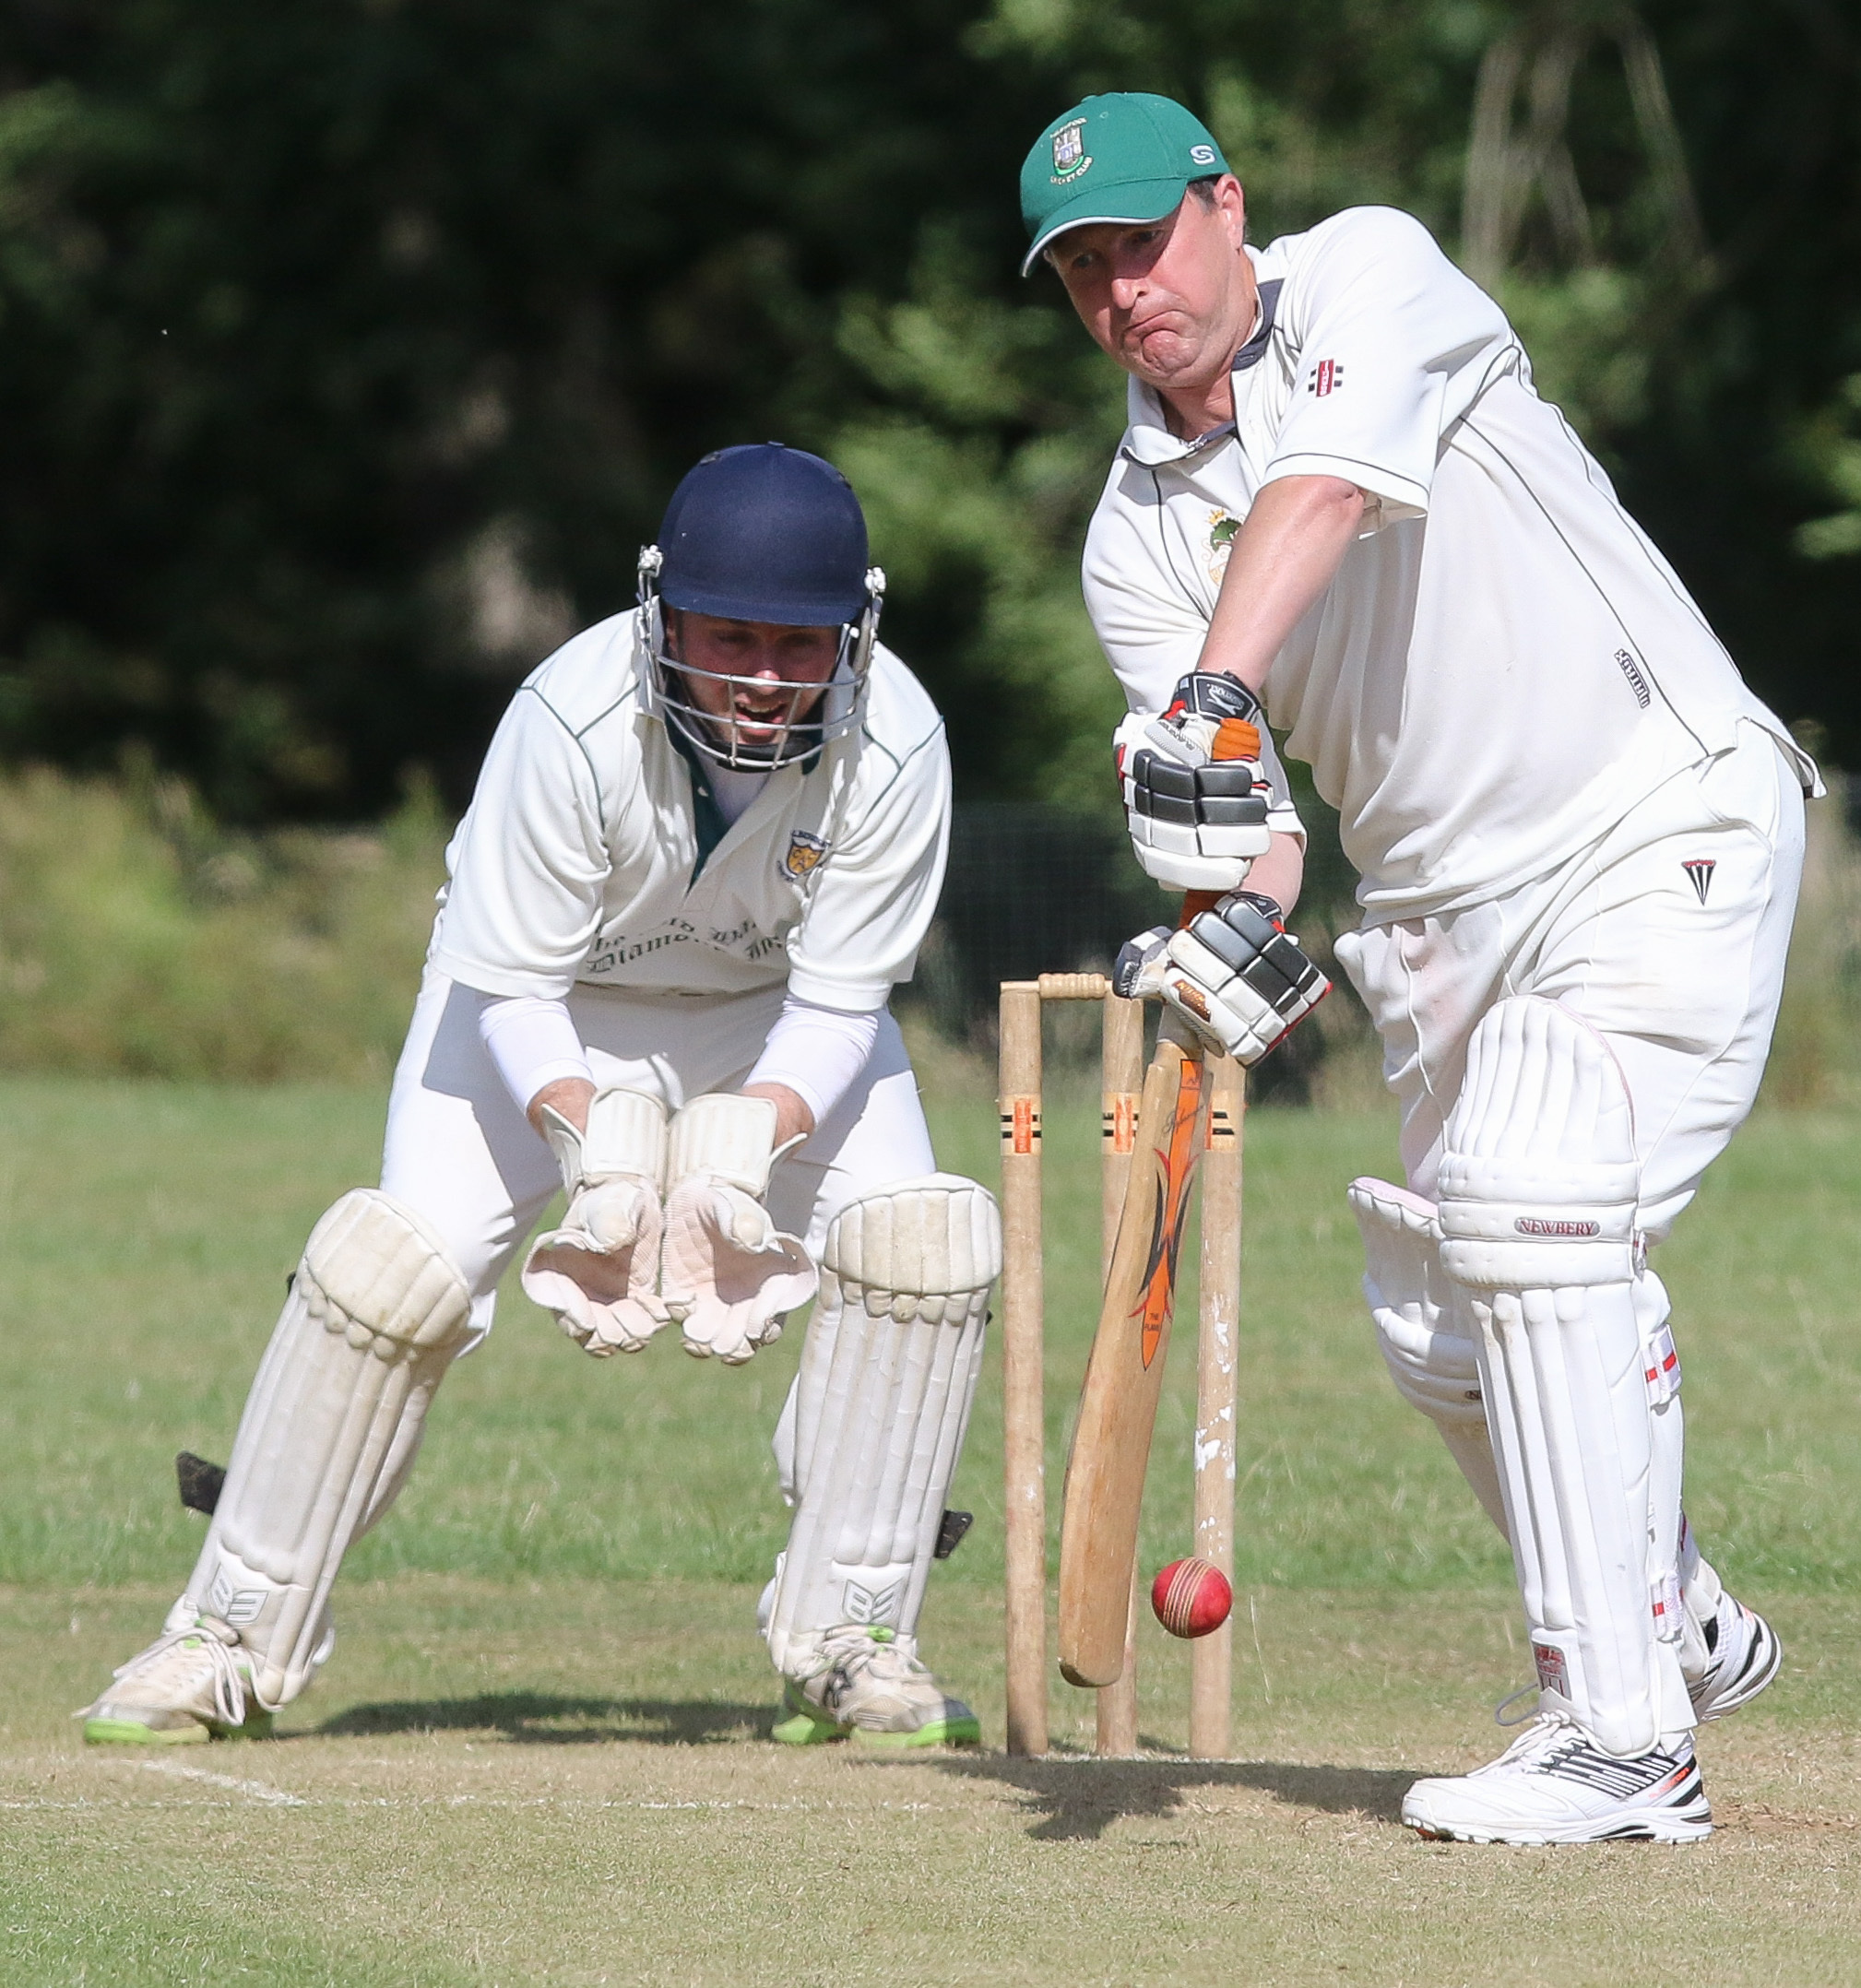 PB274-2017-24.Alberbury v Welshpool Cricket.pictured is Russell Cadwallader.Picture by Phil Blagg.PB274-2017-24.